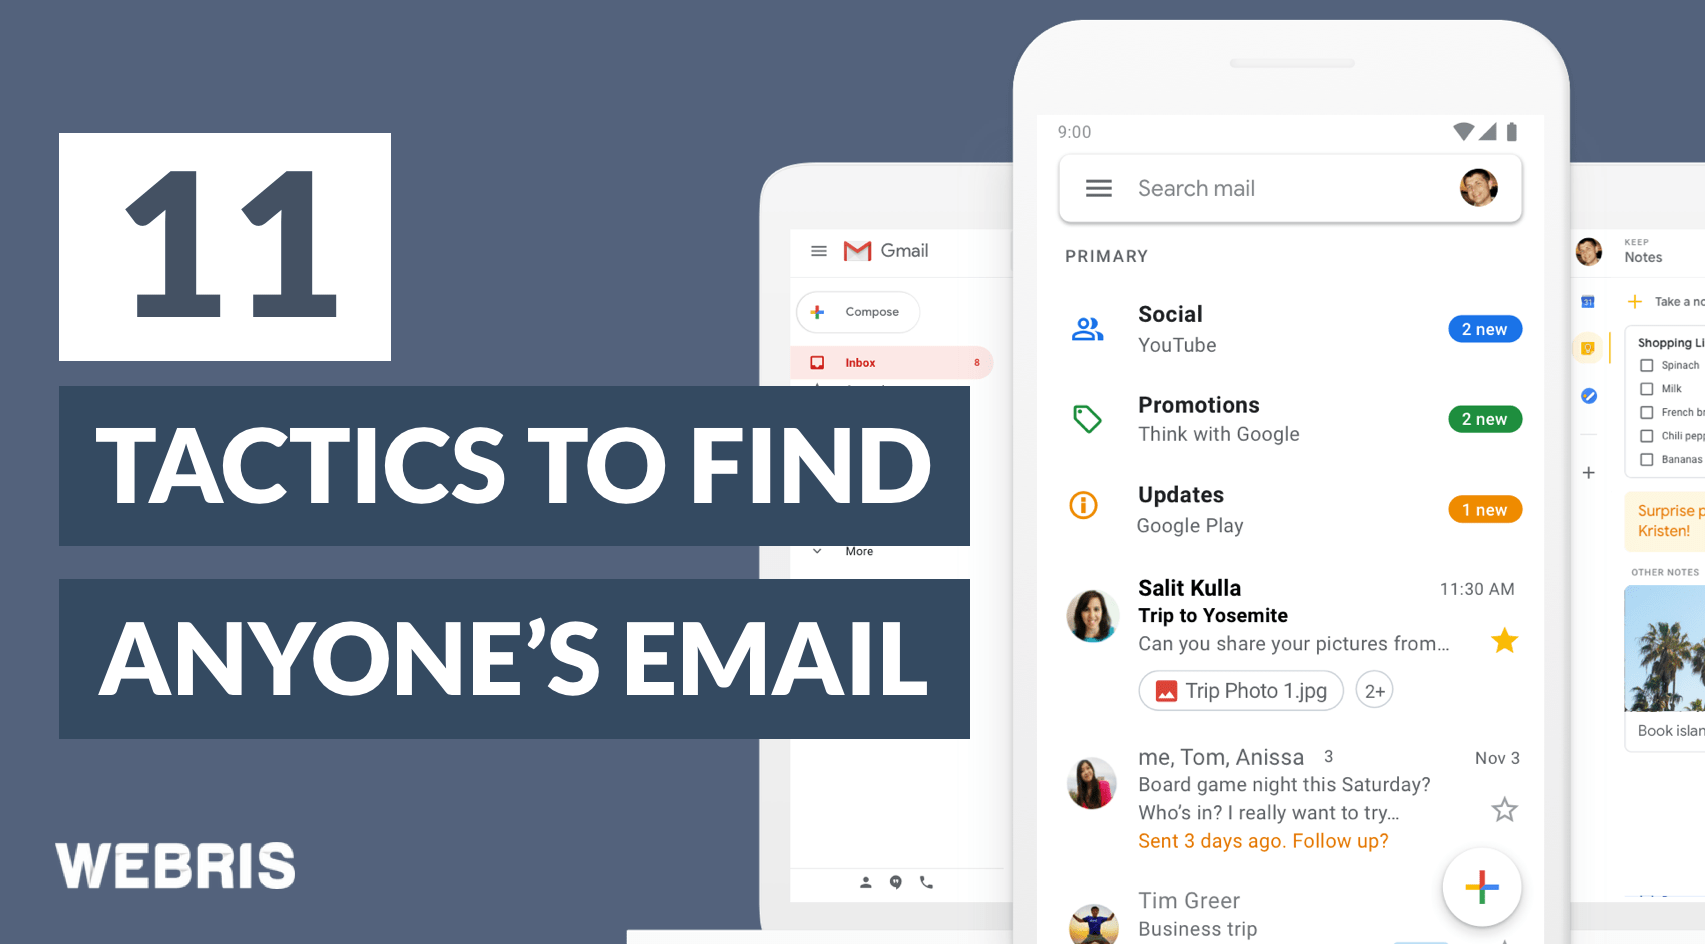 how to find anyones email